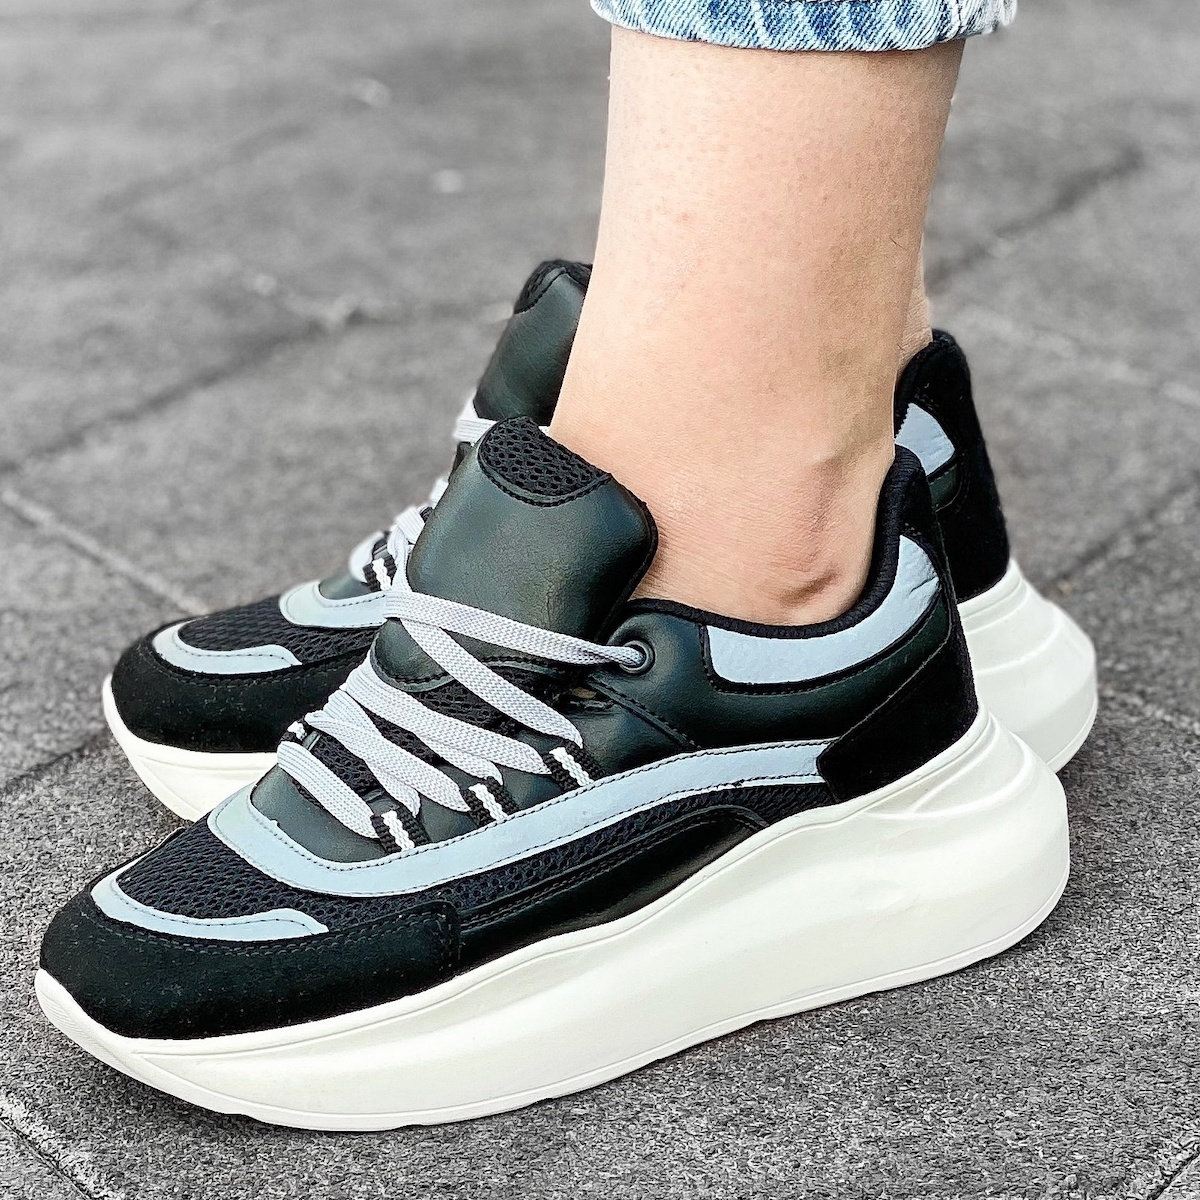 Women's Patchwork High Sole Sneakers In